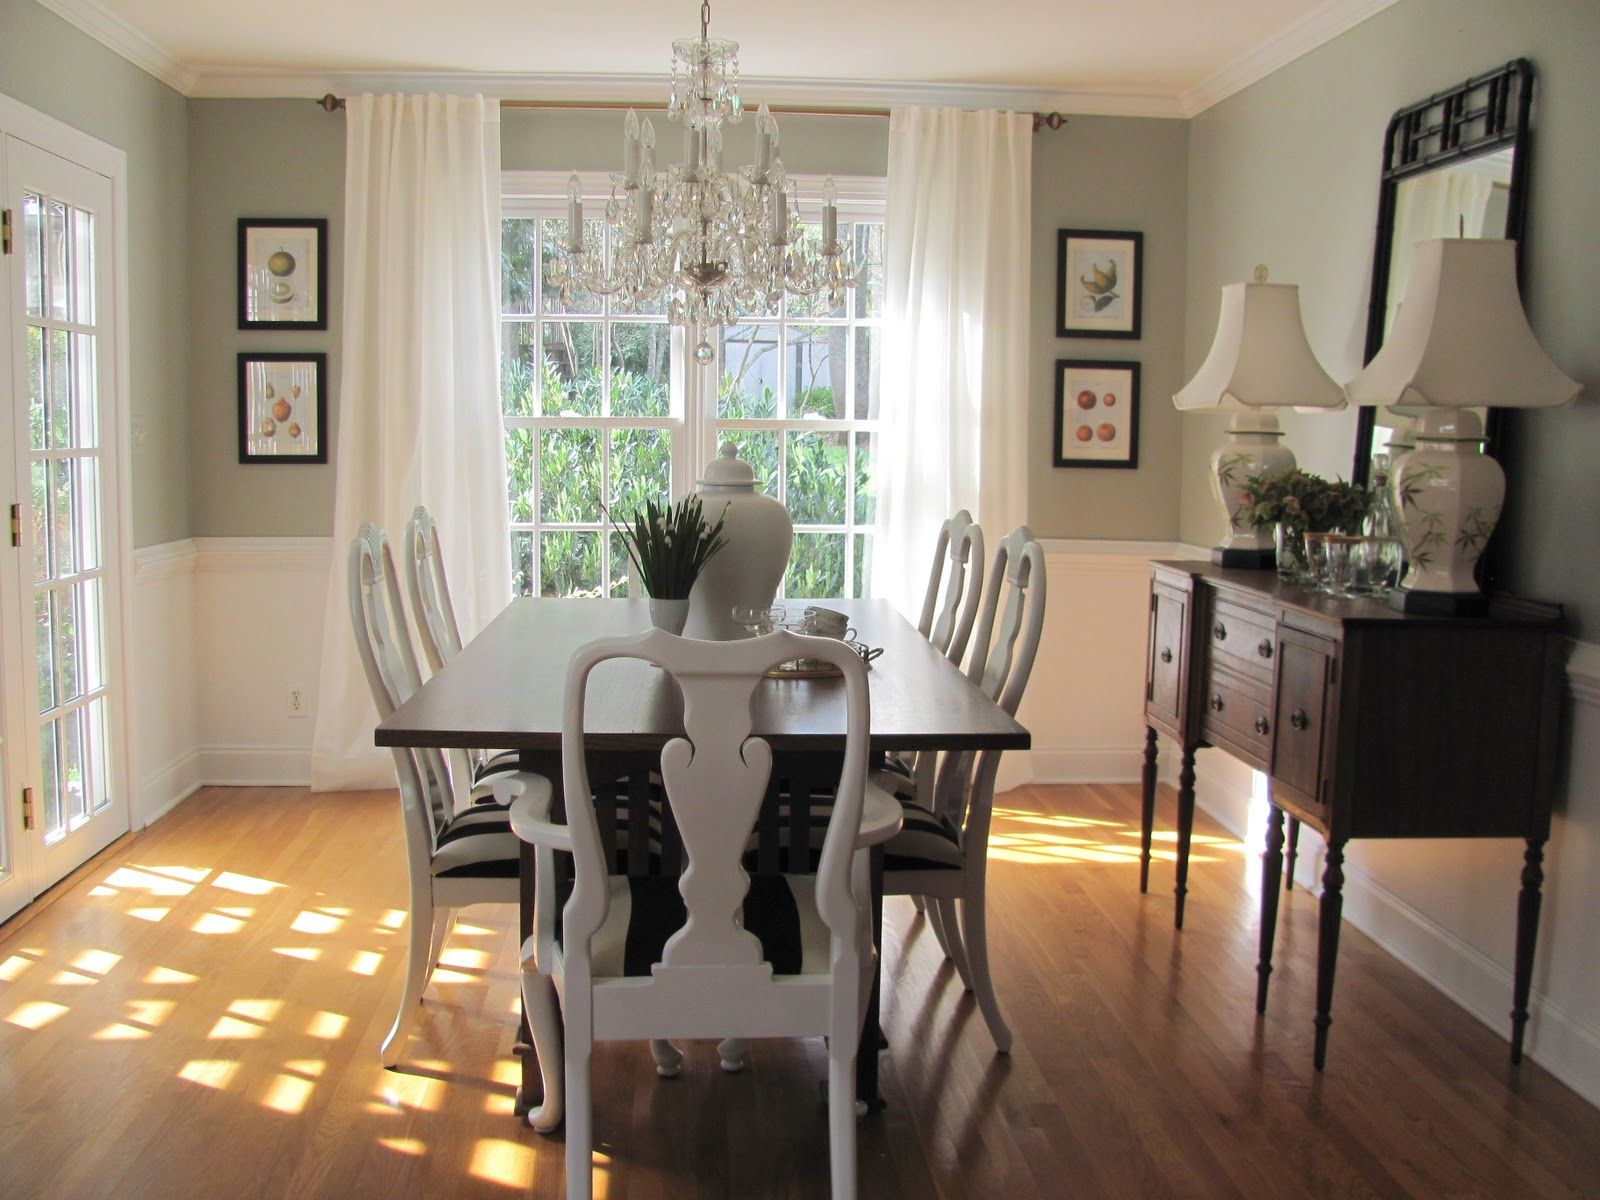 Paint Colors For Dining Room With Dark Furniture  Modern Vintage Custom Dining Room Colors With Chair Rail Decorating Inspiration